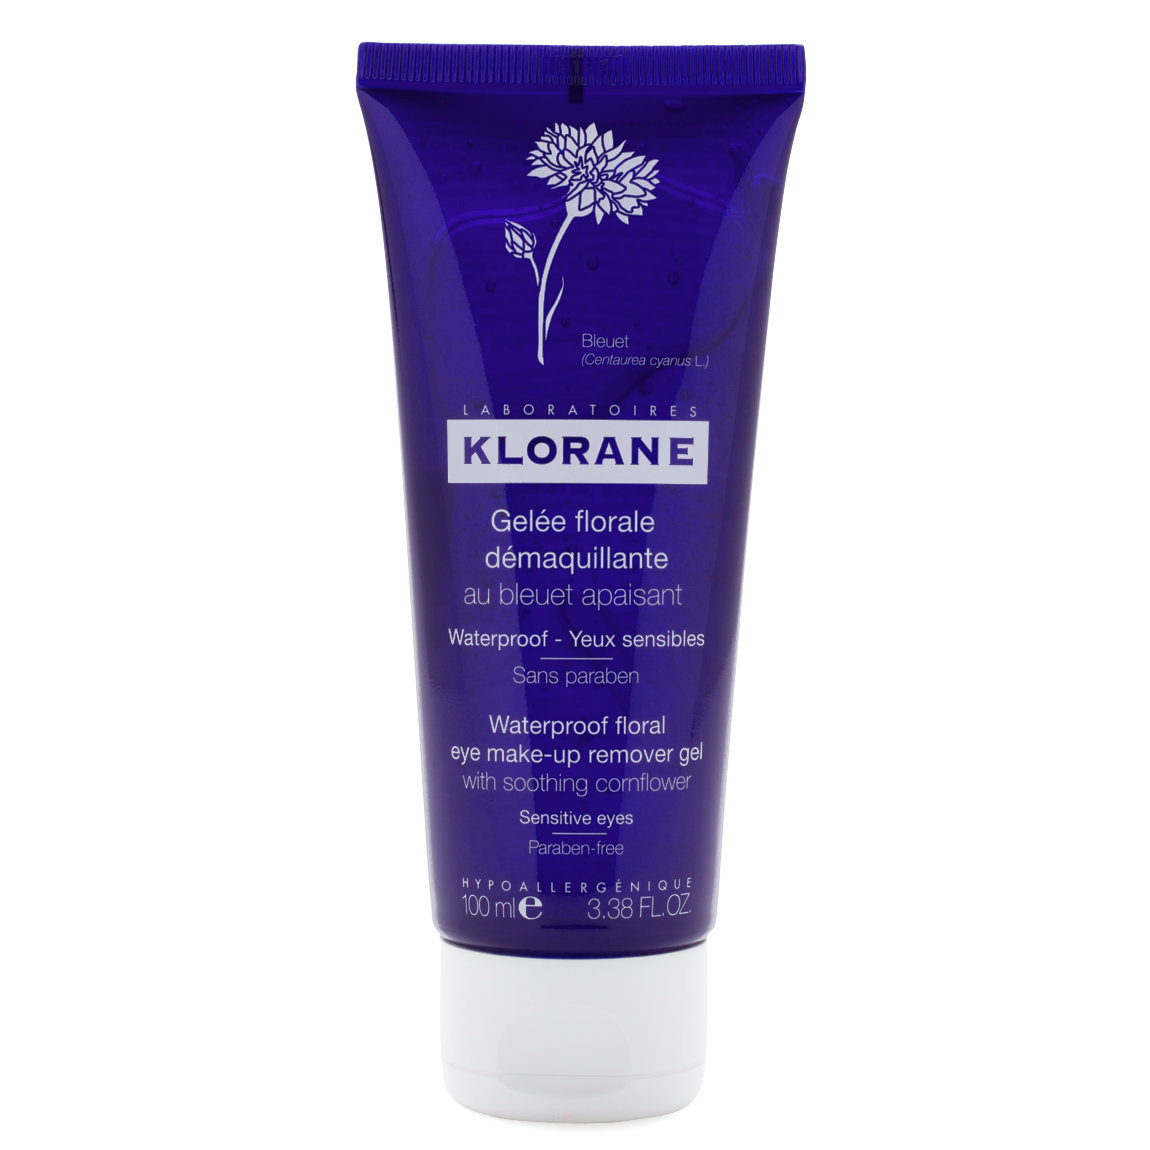 Klorane Waterproof Floral Eye Make-Up Remover Gel with Soothing Cornflower product smear.